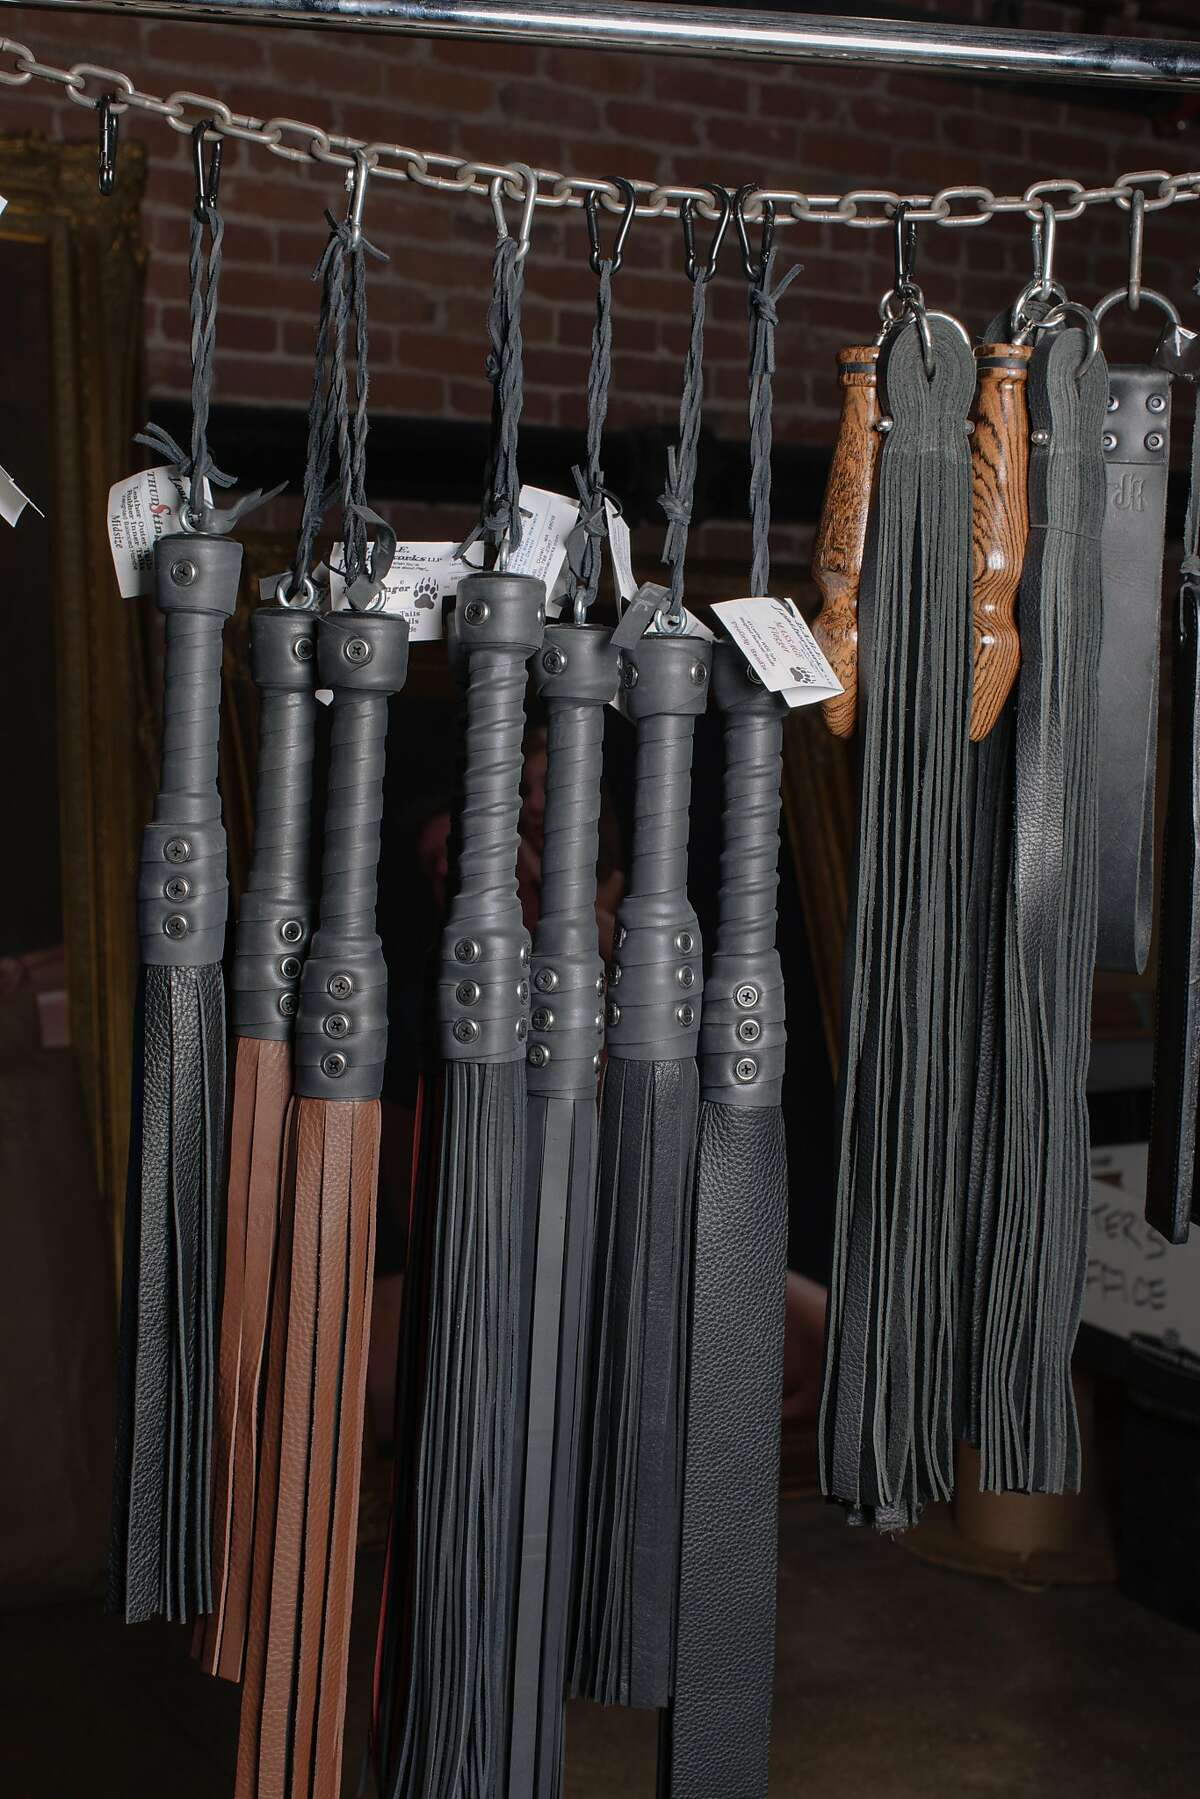 A detail of merchandise in the basement of the new headquarters of Kink.com in San Francisco, California, on May 9th, 2018.